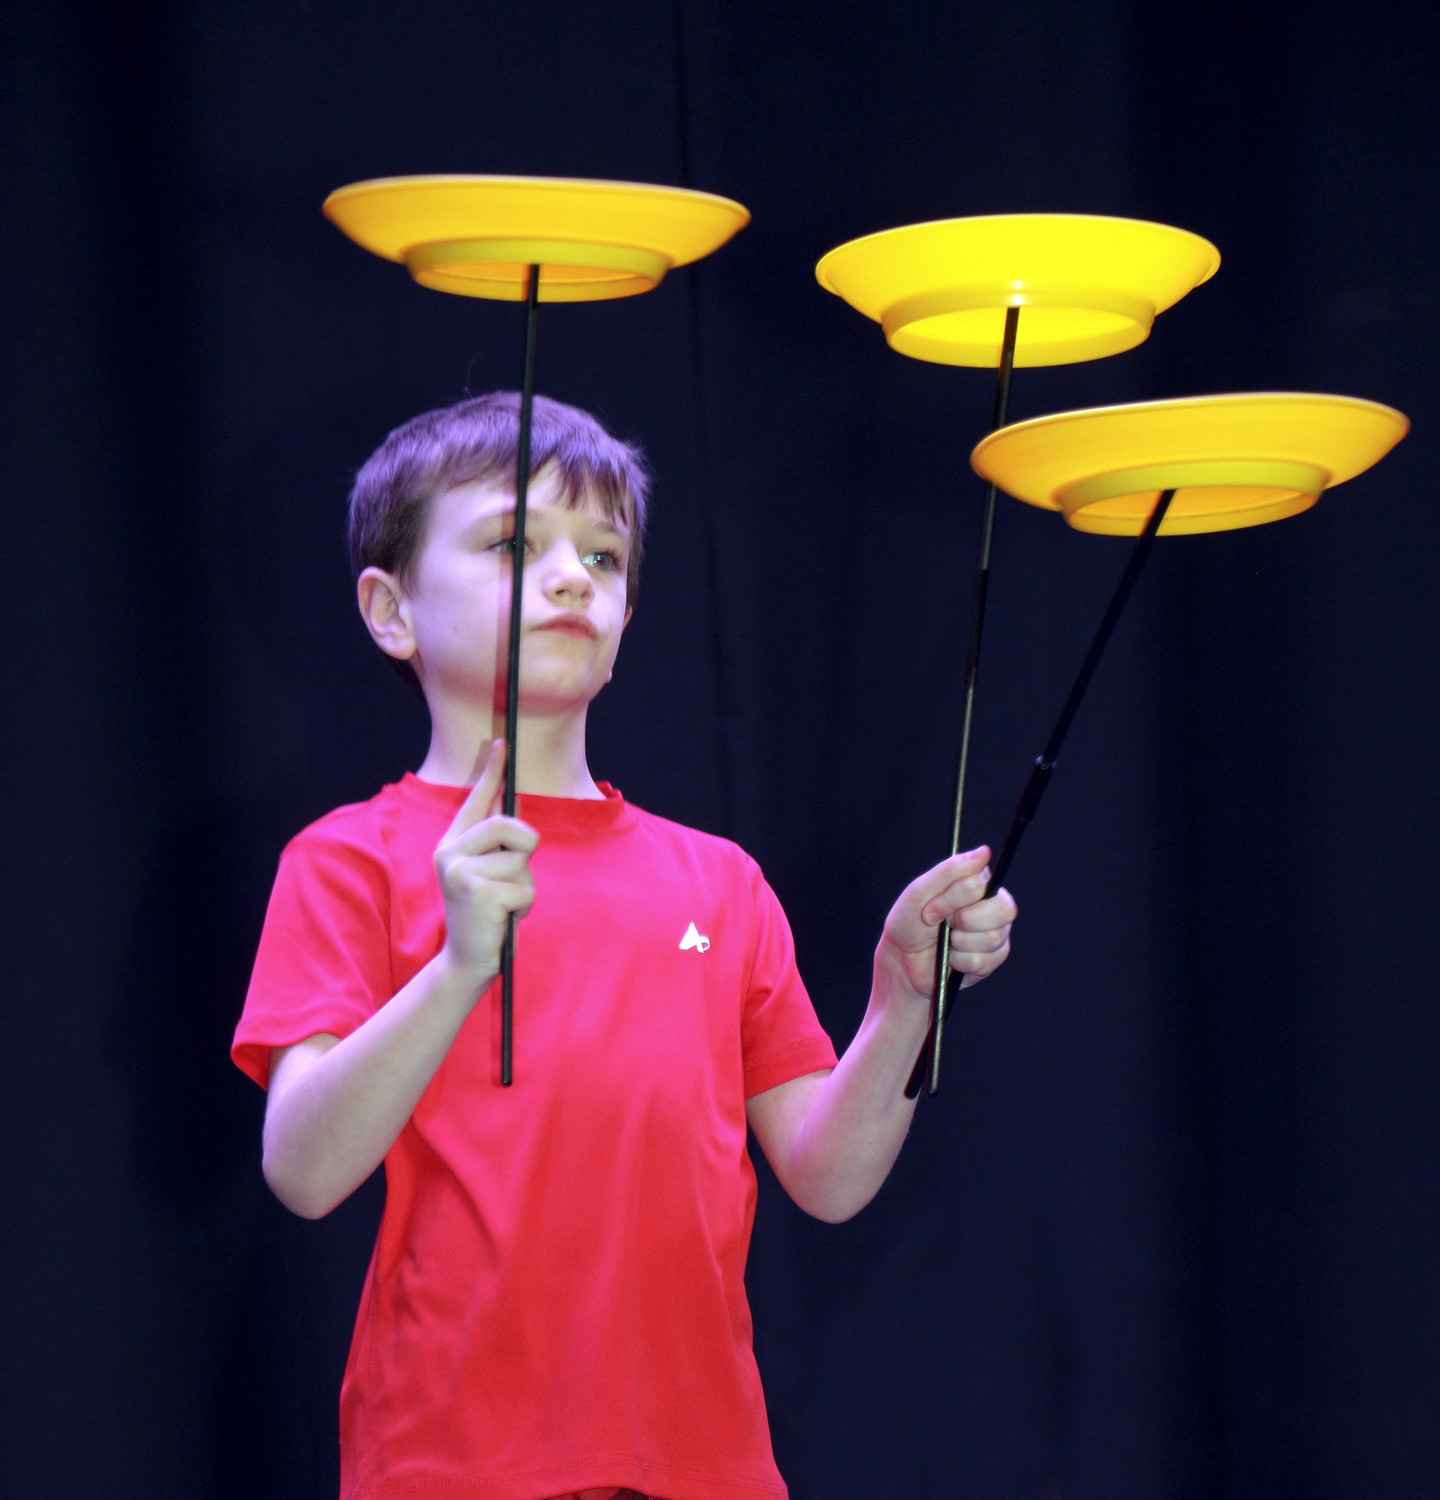 John Hassel, 8, twirled three plates at once.